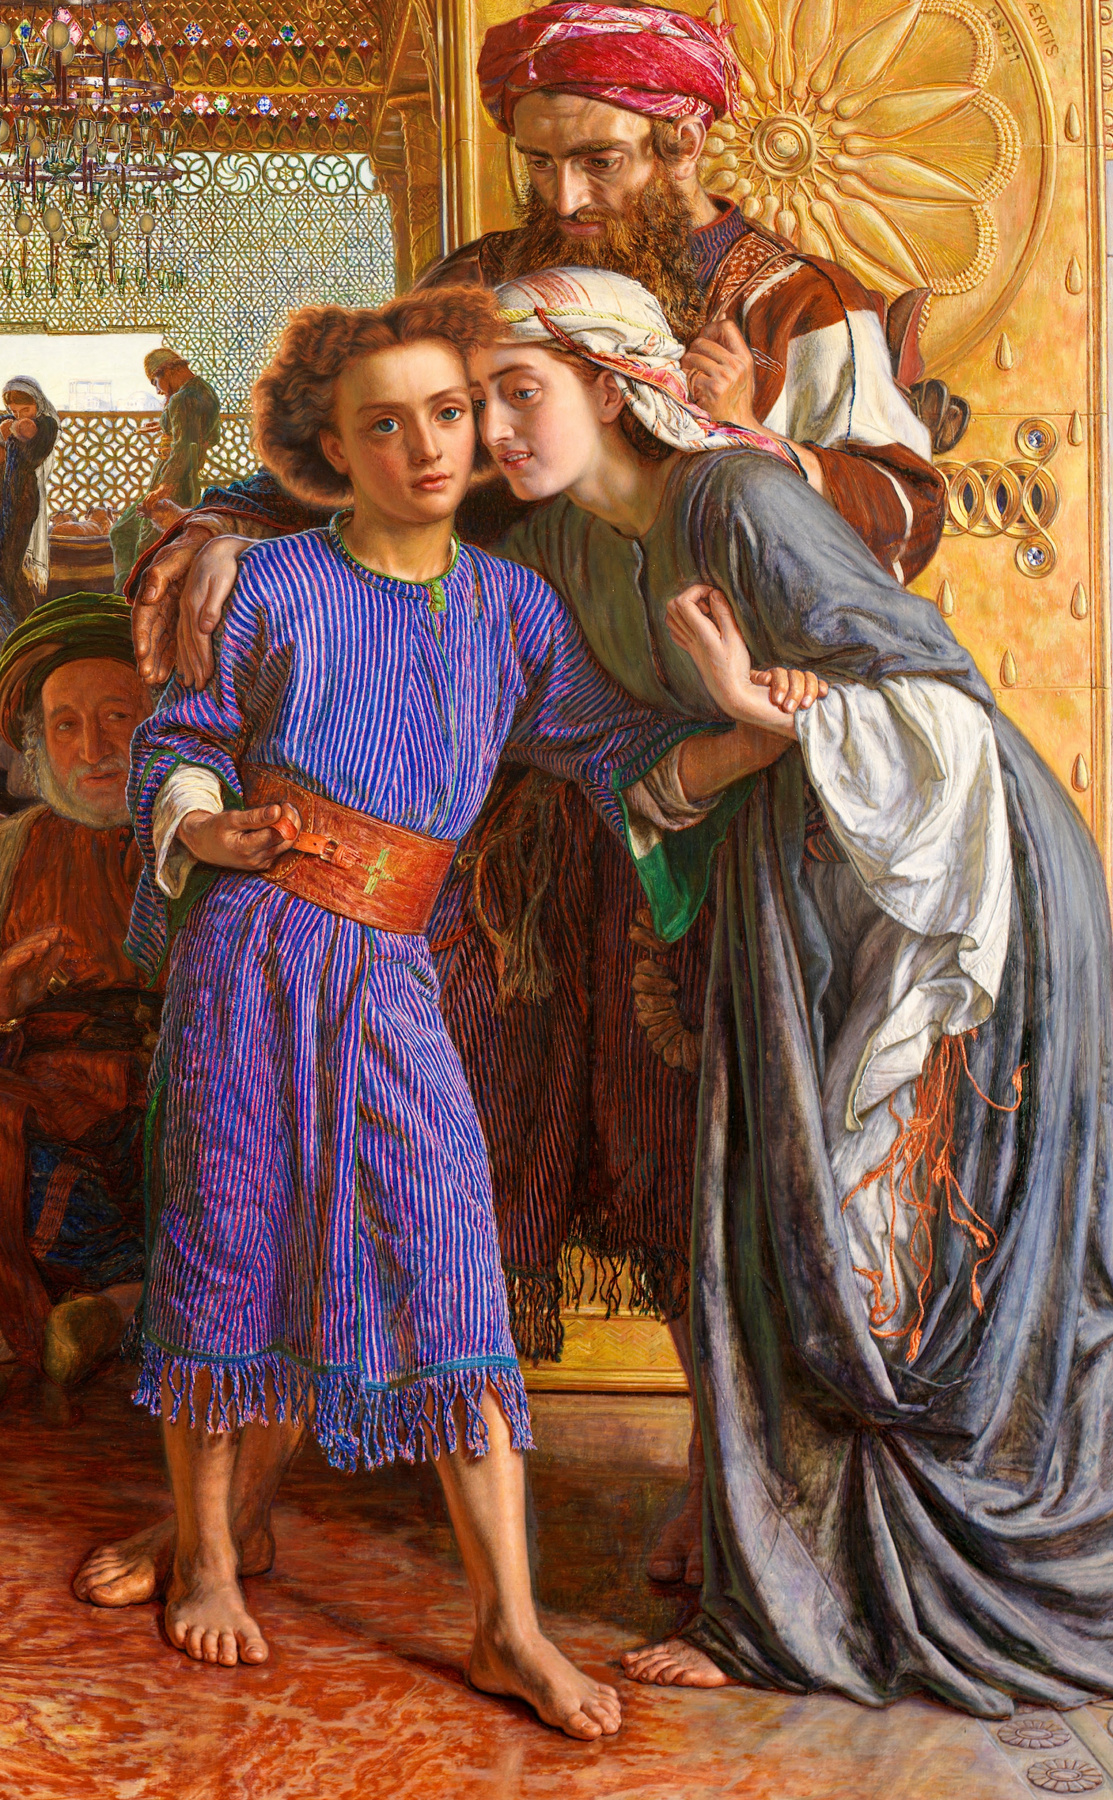 William Holman Hunt. The finding of the Saviour in the temple. Fragment